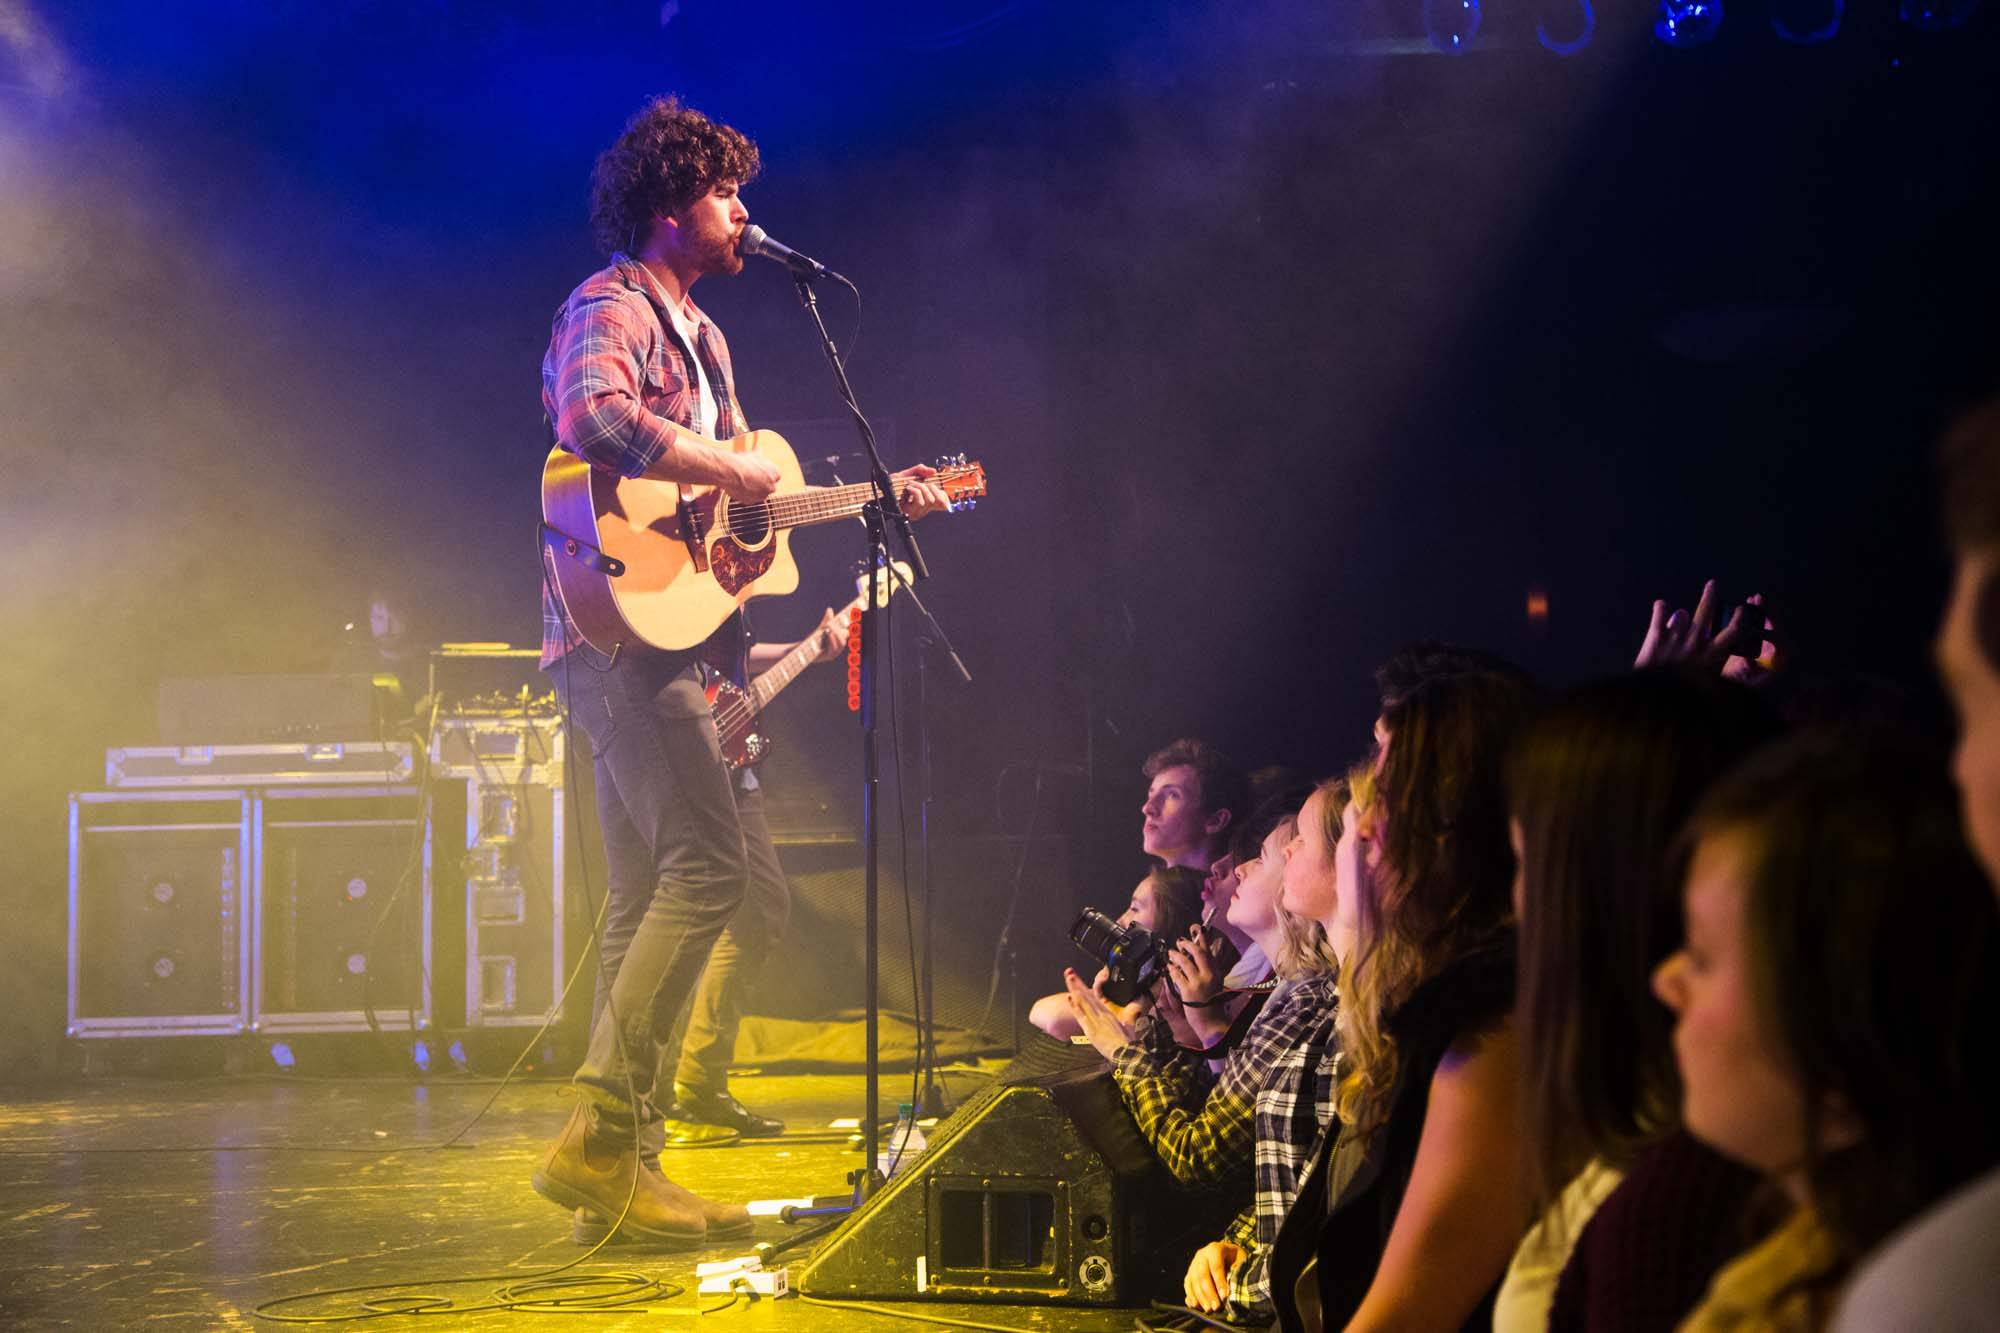 Vance Joy at the Commodore Ballroom, Vancouver, Nov. 16 2014. Kirk Chantraine photo.